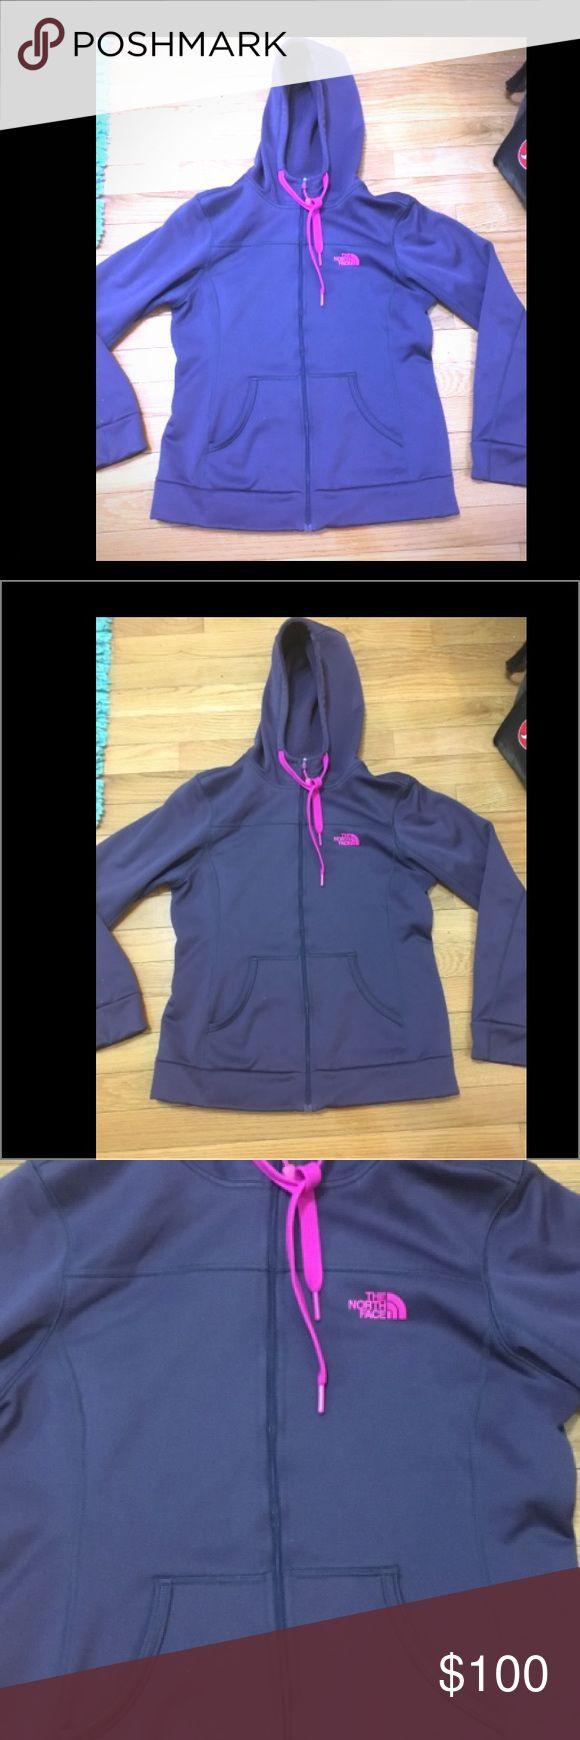 North Face purple zip up hoodie EUC. hardly used. ONLY LOOKING TO SELL. No trades. Please use offer button if interested. Open to reasonable offers.  Lmk if I can answer any questions for you. Thank you for visiting my closet. Comeback again! 😀 North Face Jackets & Coats